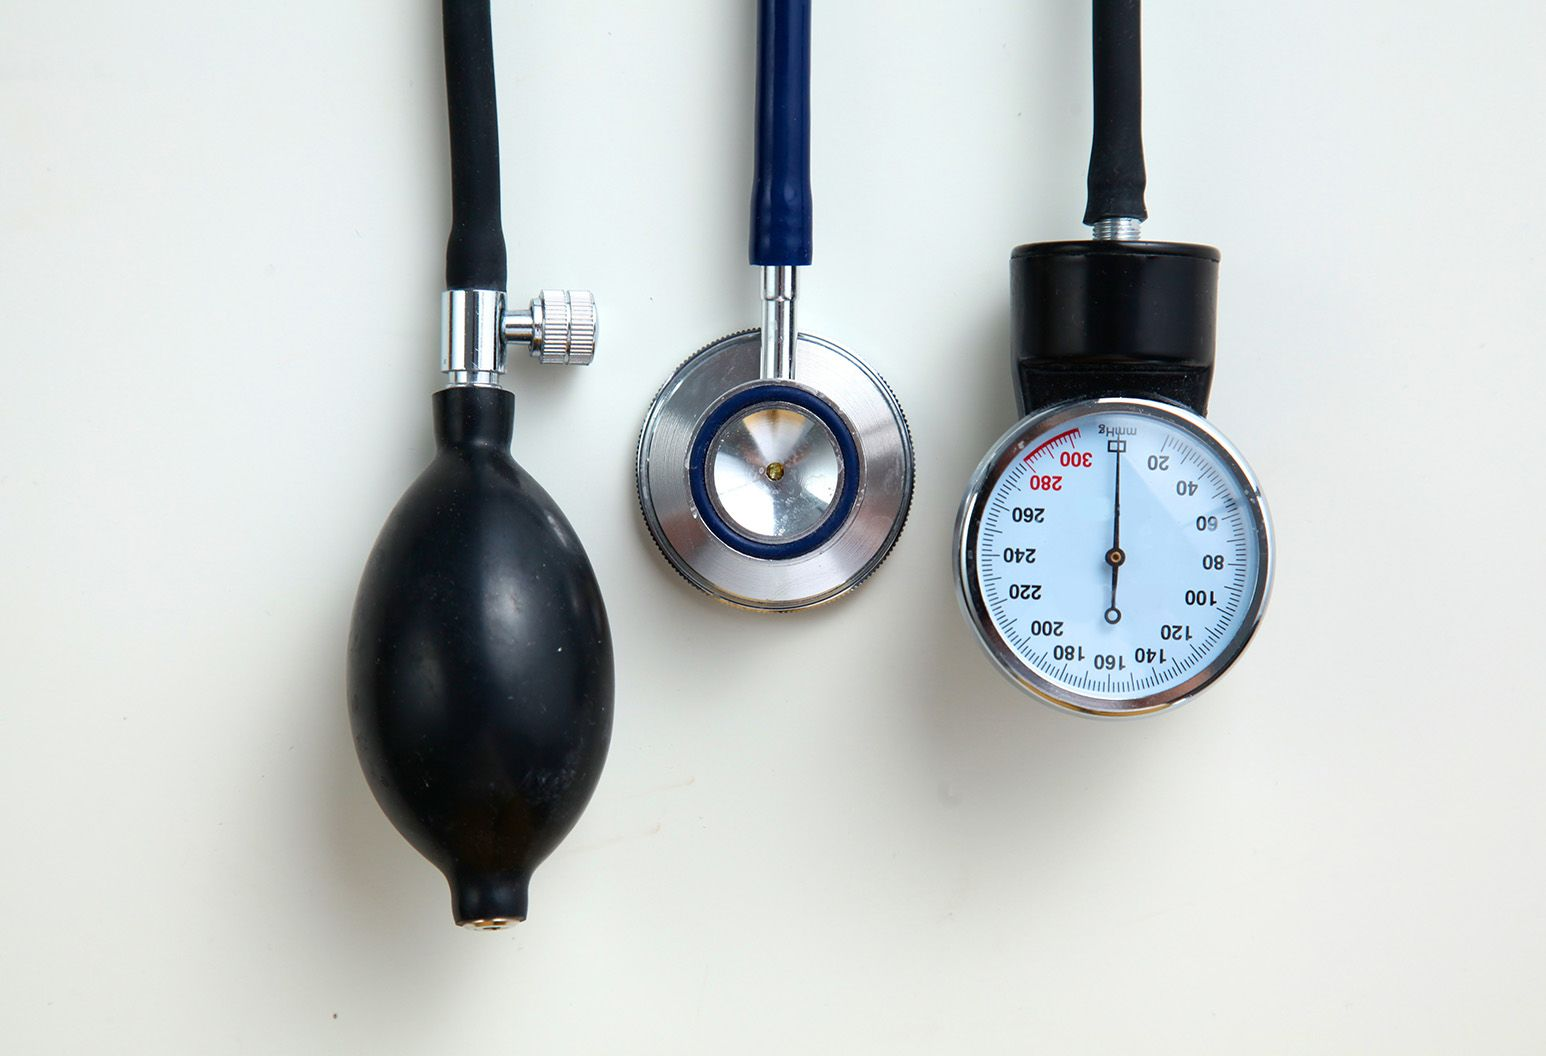 A blood pressure gauge and the end of a stethoscope hang on a wall.